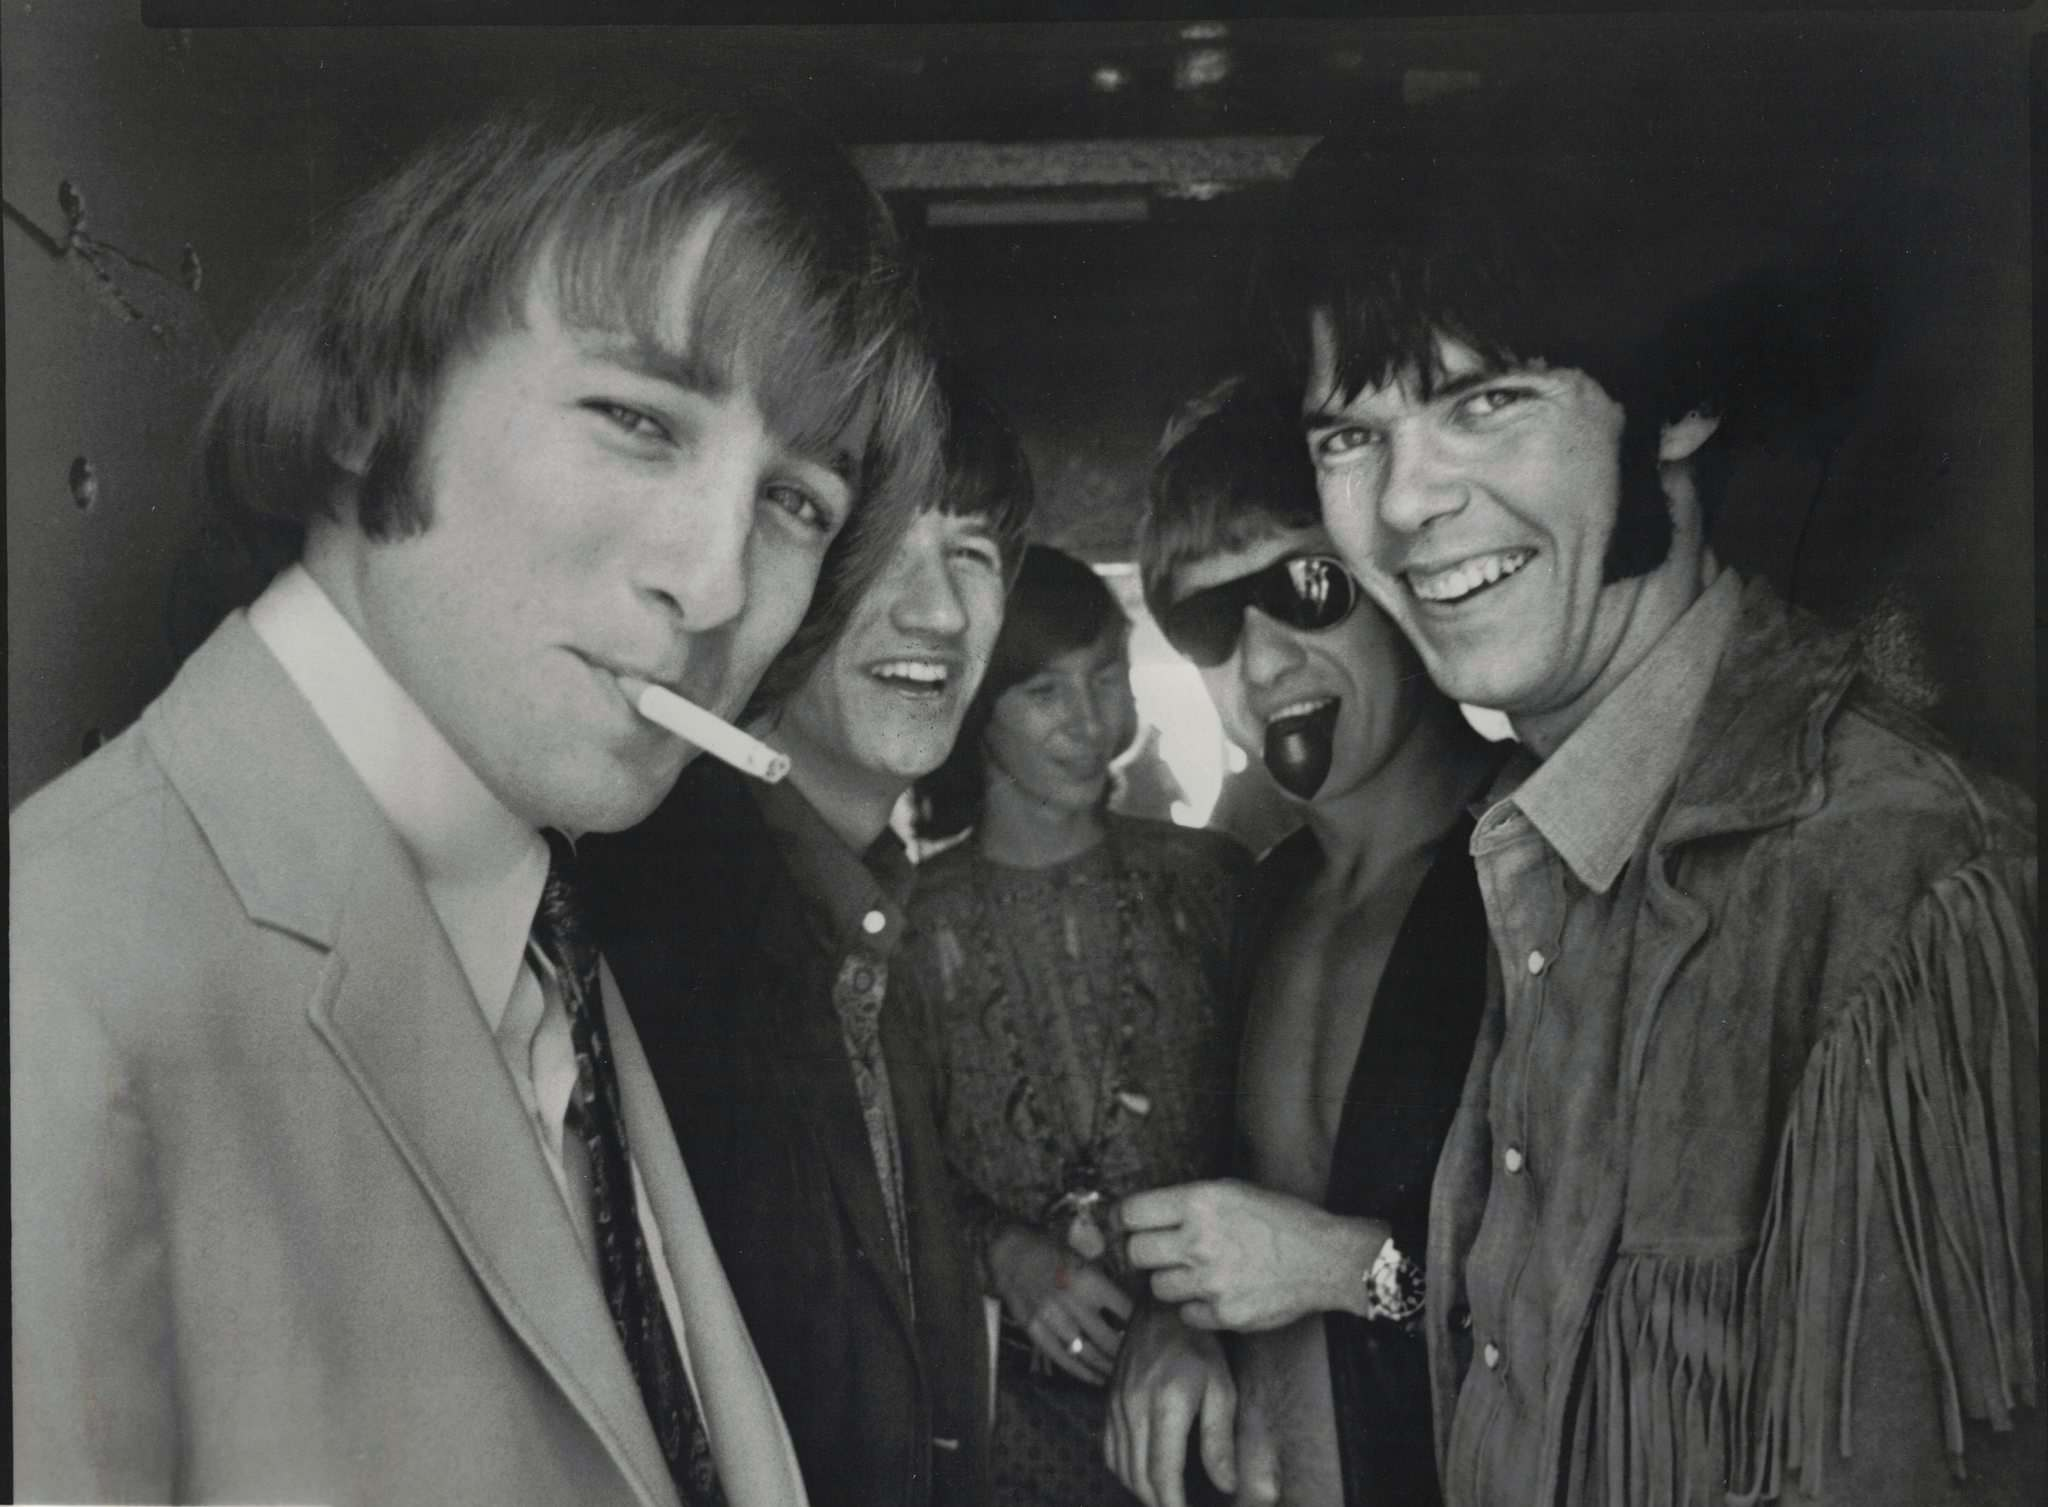 Buffalo Springfield in July 1966. Stephen Stills is at left and Neil Young is at right.</p></p></p>